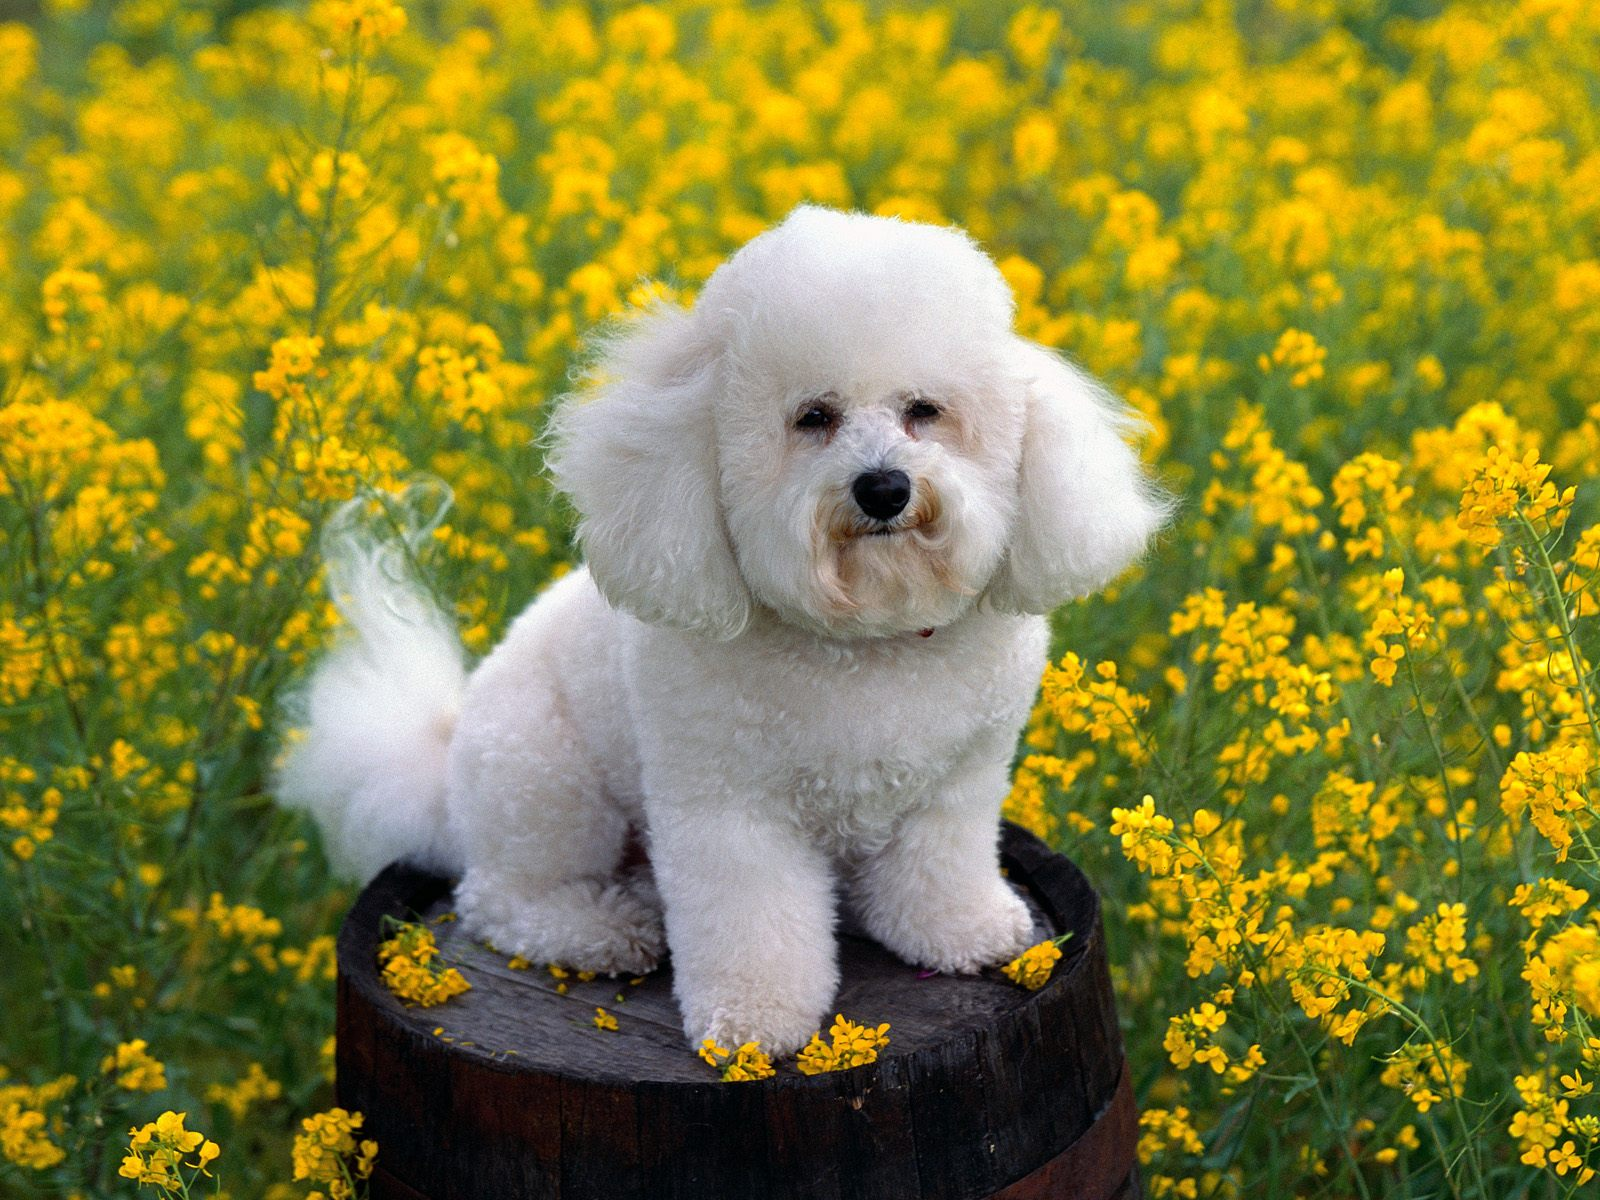 Bichon Frisé dog on the barrel wallpaper